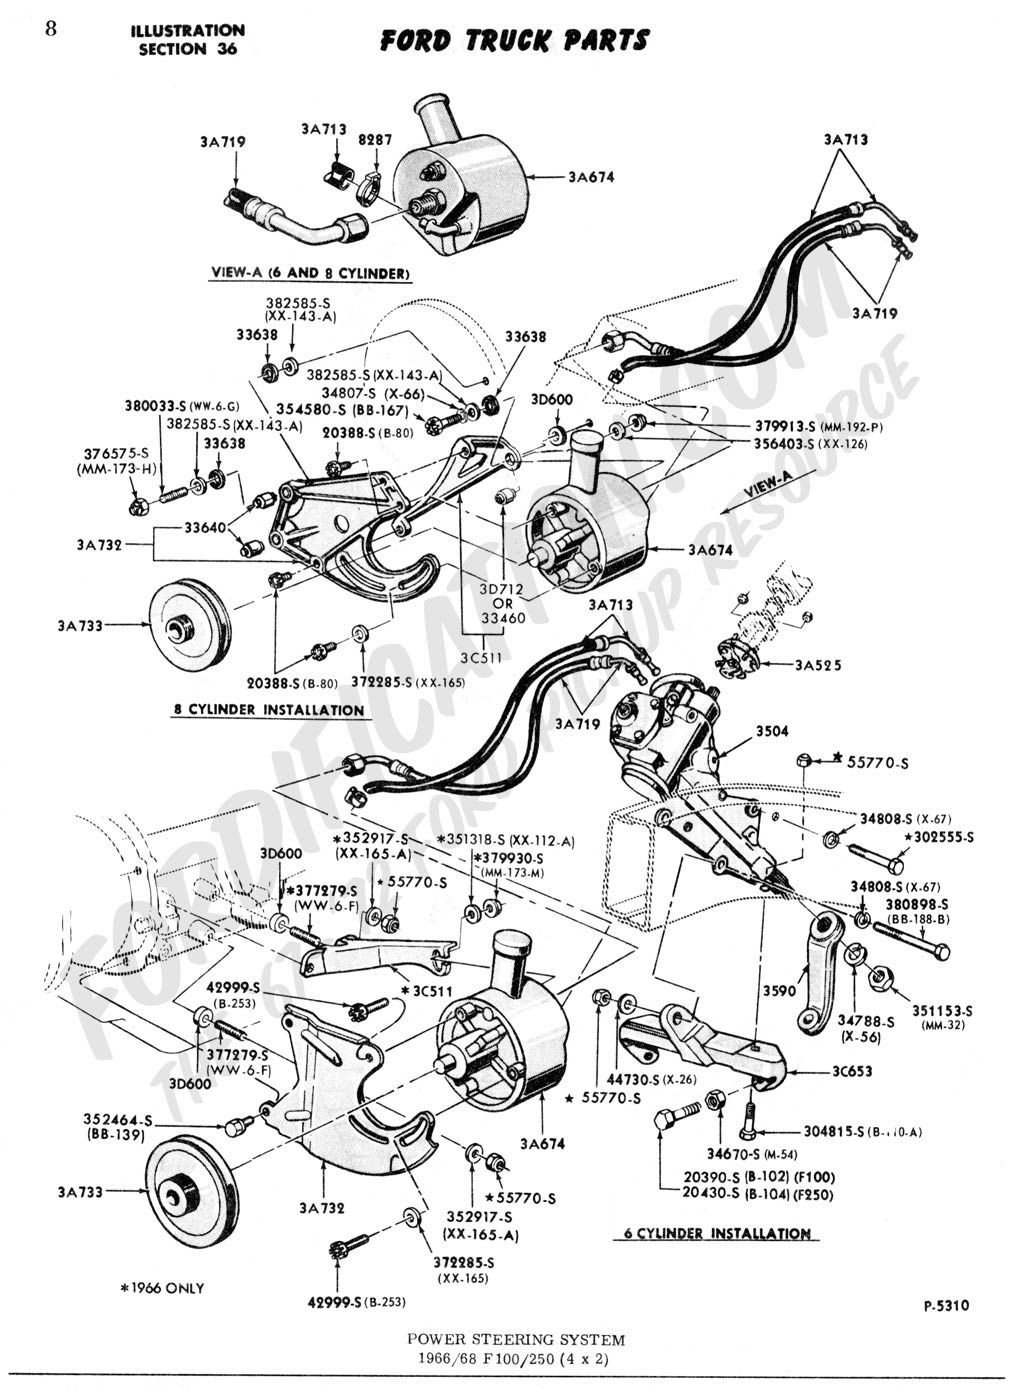 hight resolution of 1977 ford truck steering diagram power steering system